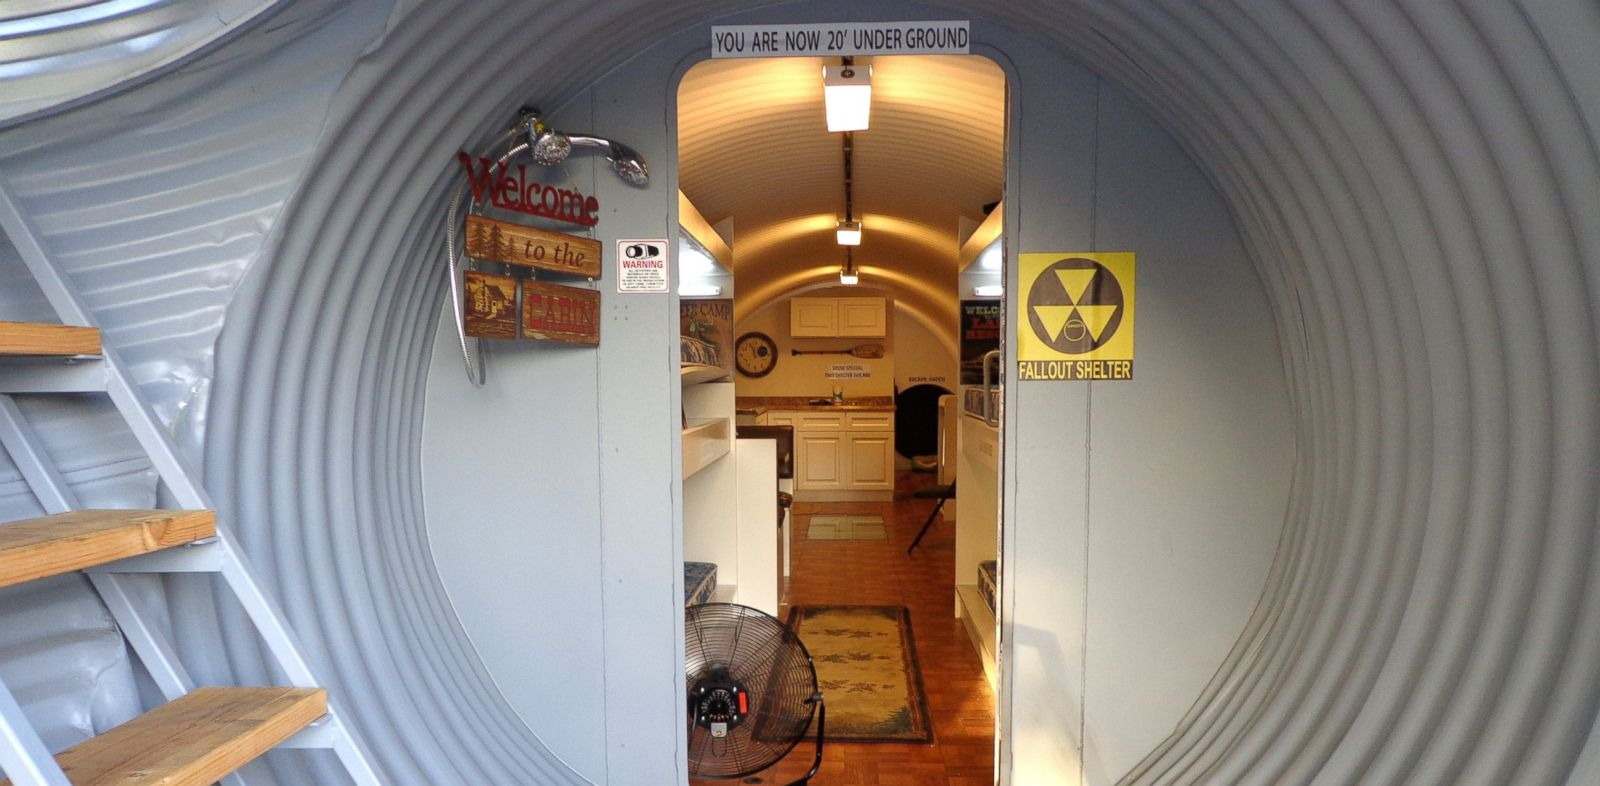 PHOTO: A view of a survival shelters decontamination area leading into the living area of a bomb-proof shelter for sale in Montebello, Calif.